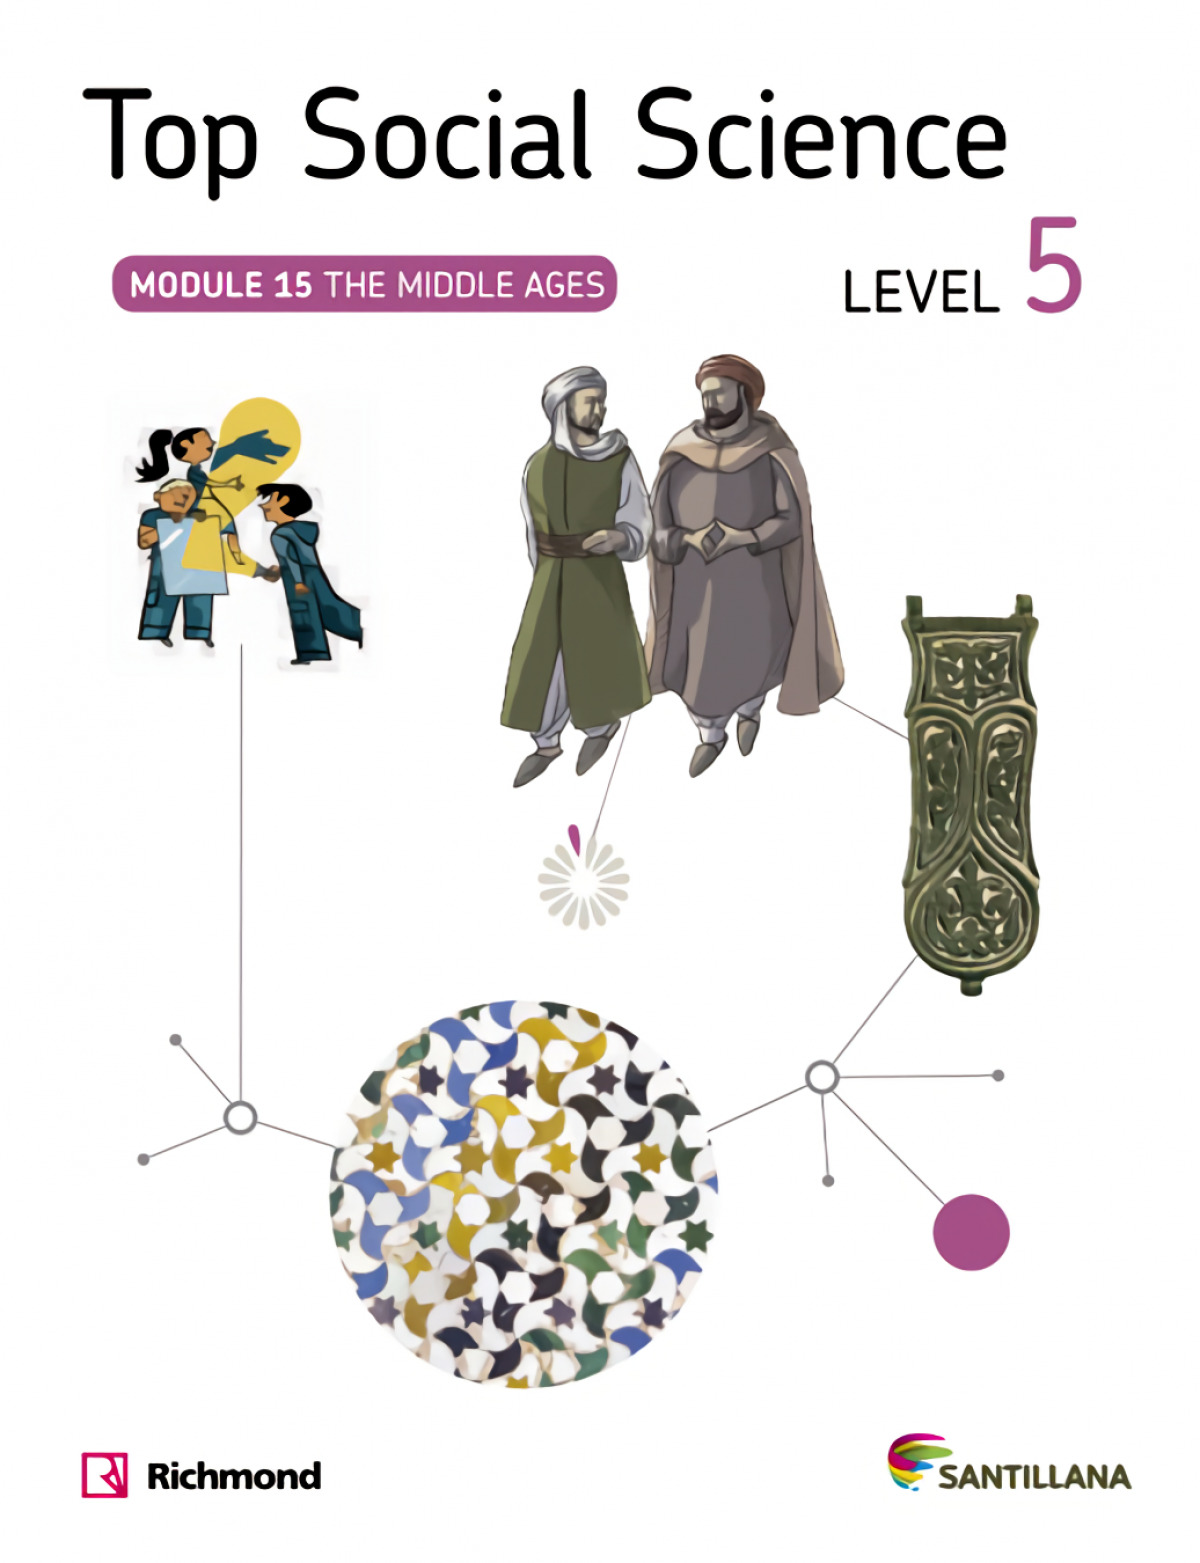 Top social science 5. The middle ages